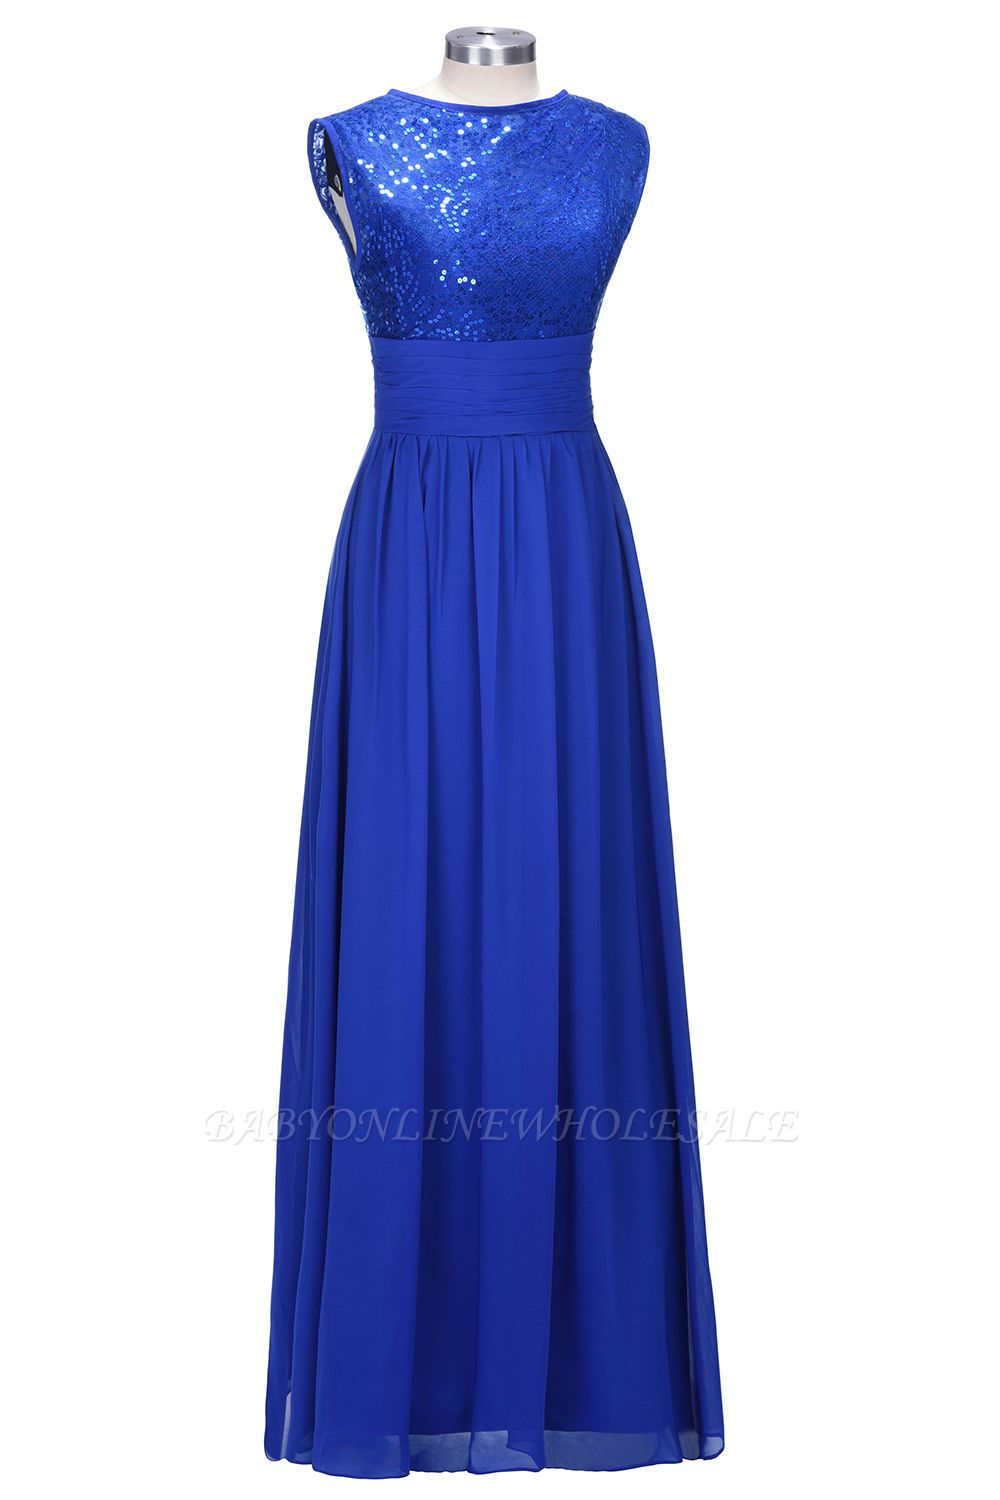 VICKI | A-line Sleeveless Crew Long Sequined Lace Chiffon Bridesmaid Dresses